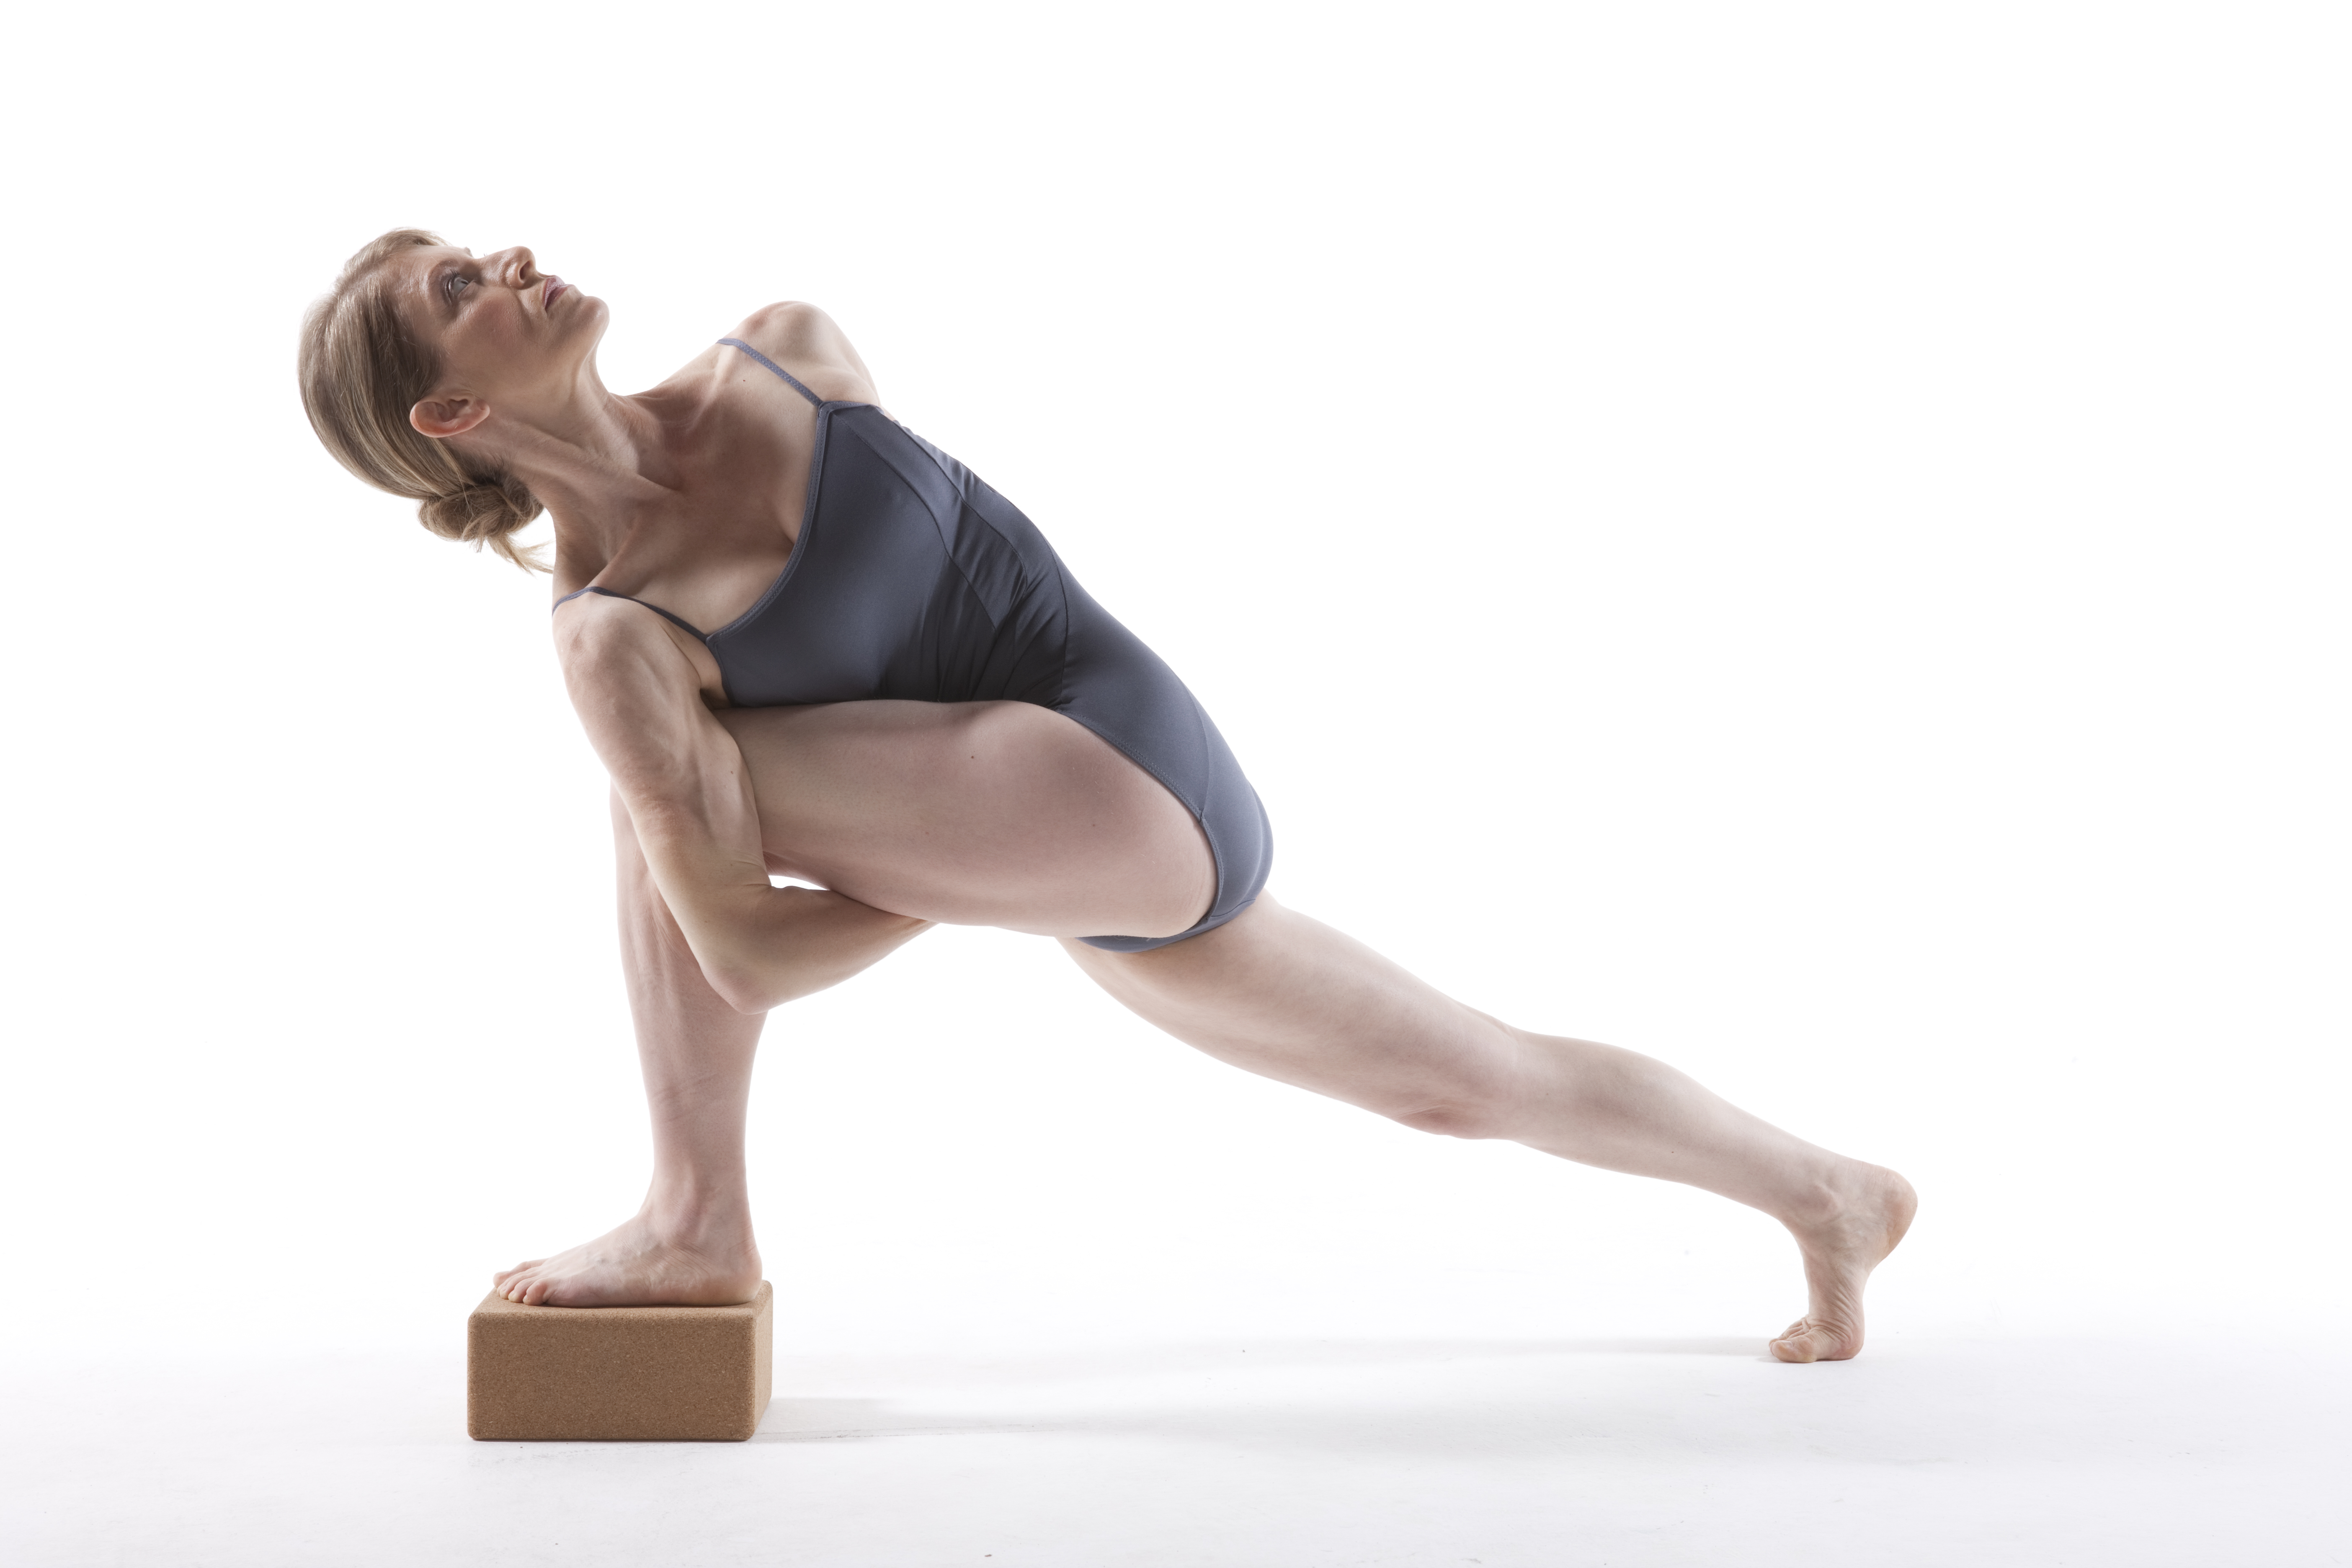 d5cd5f9124 Overstretching in Yoga | Developing Joint Stability